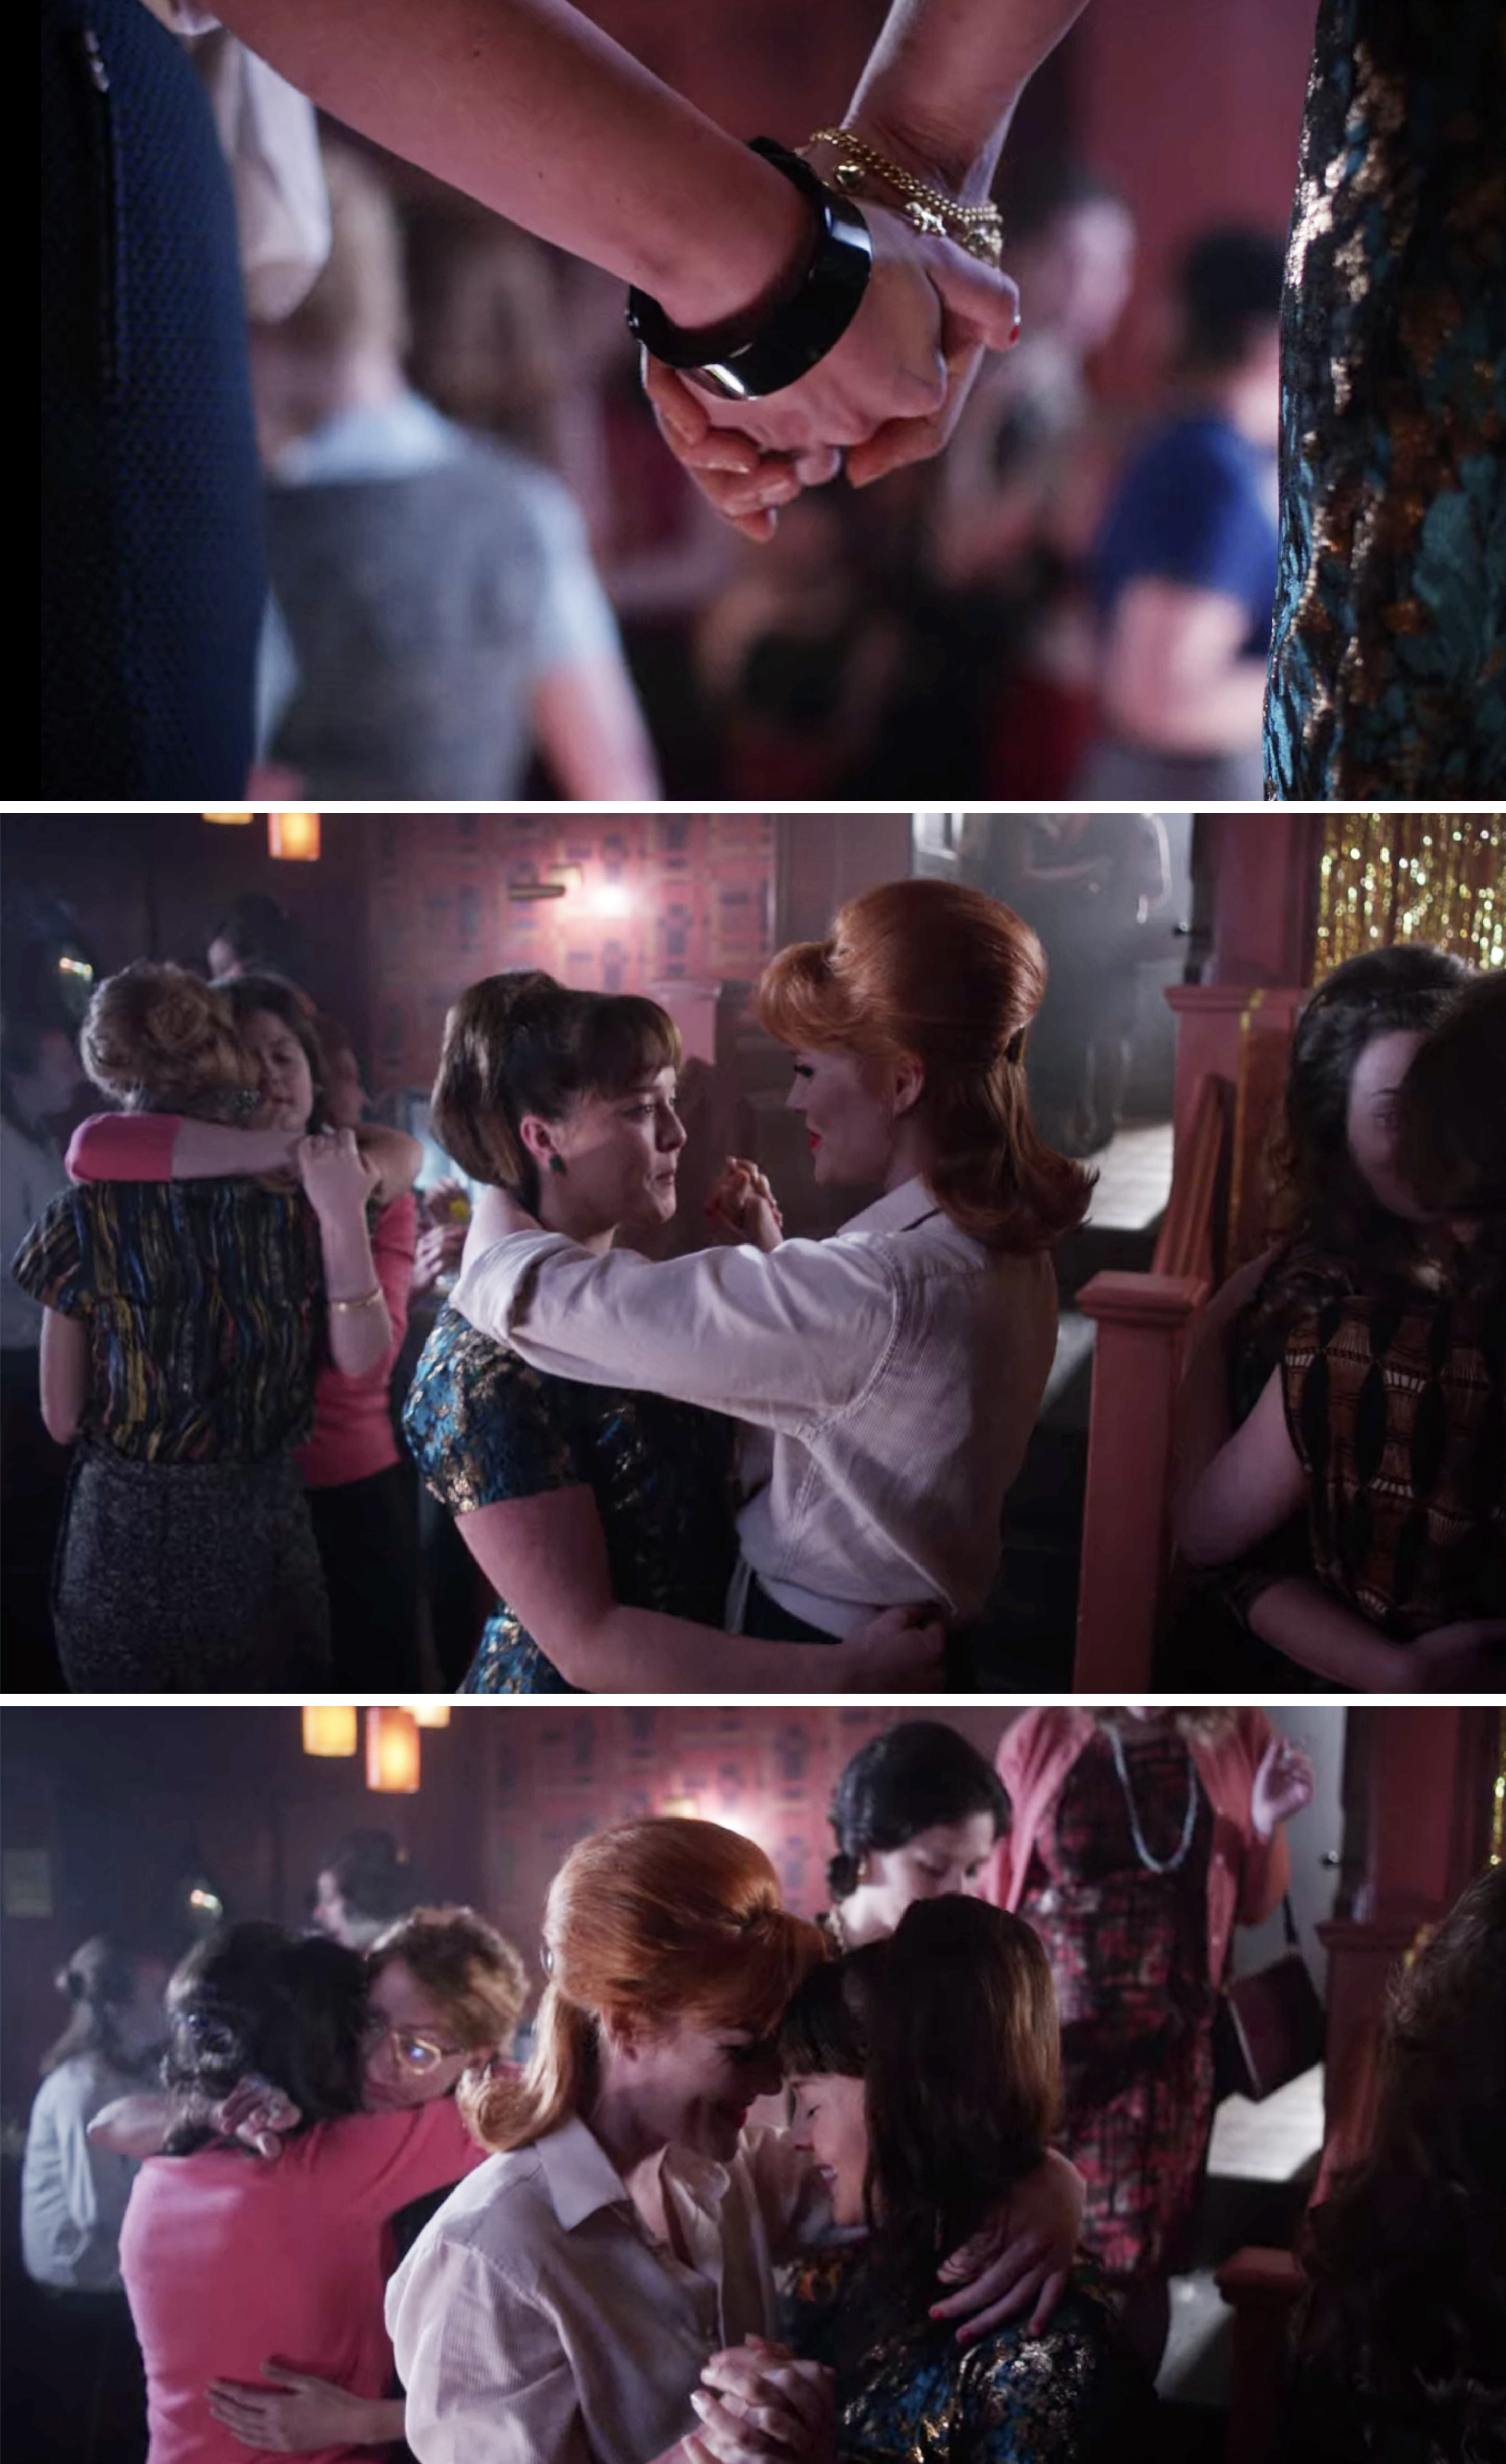 Patsy and Delia dancing and holding hands